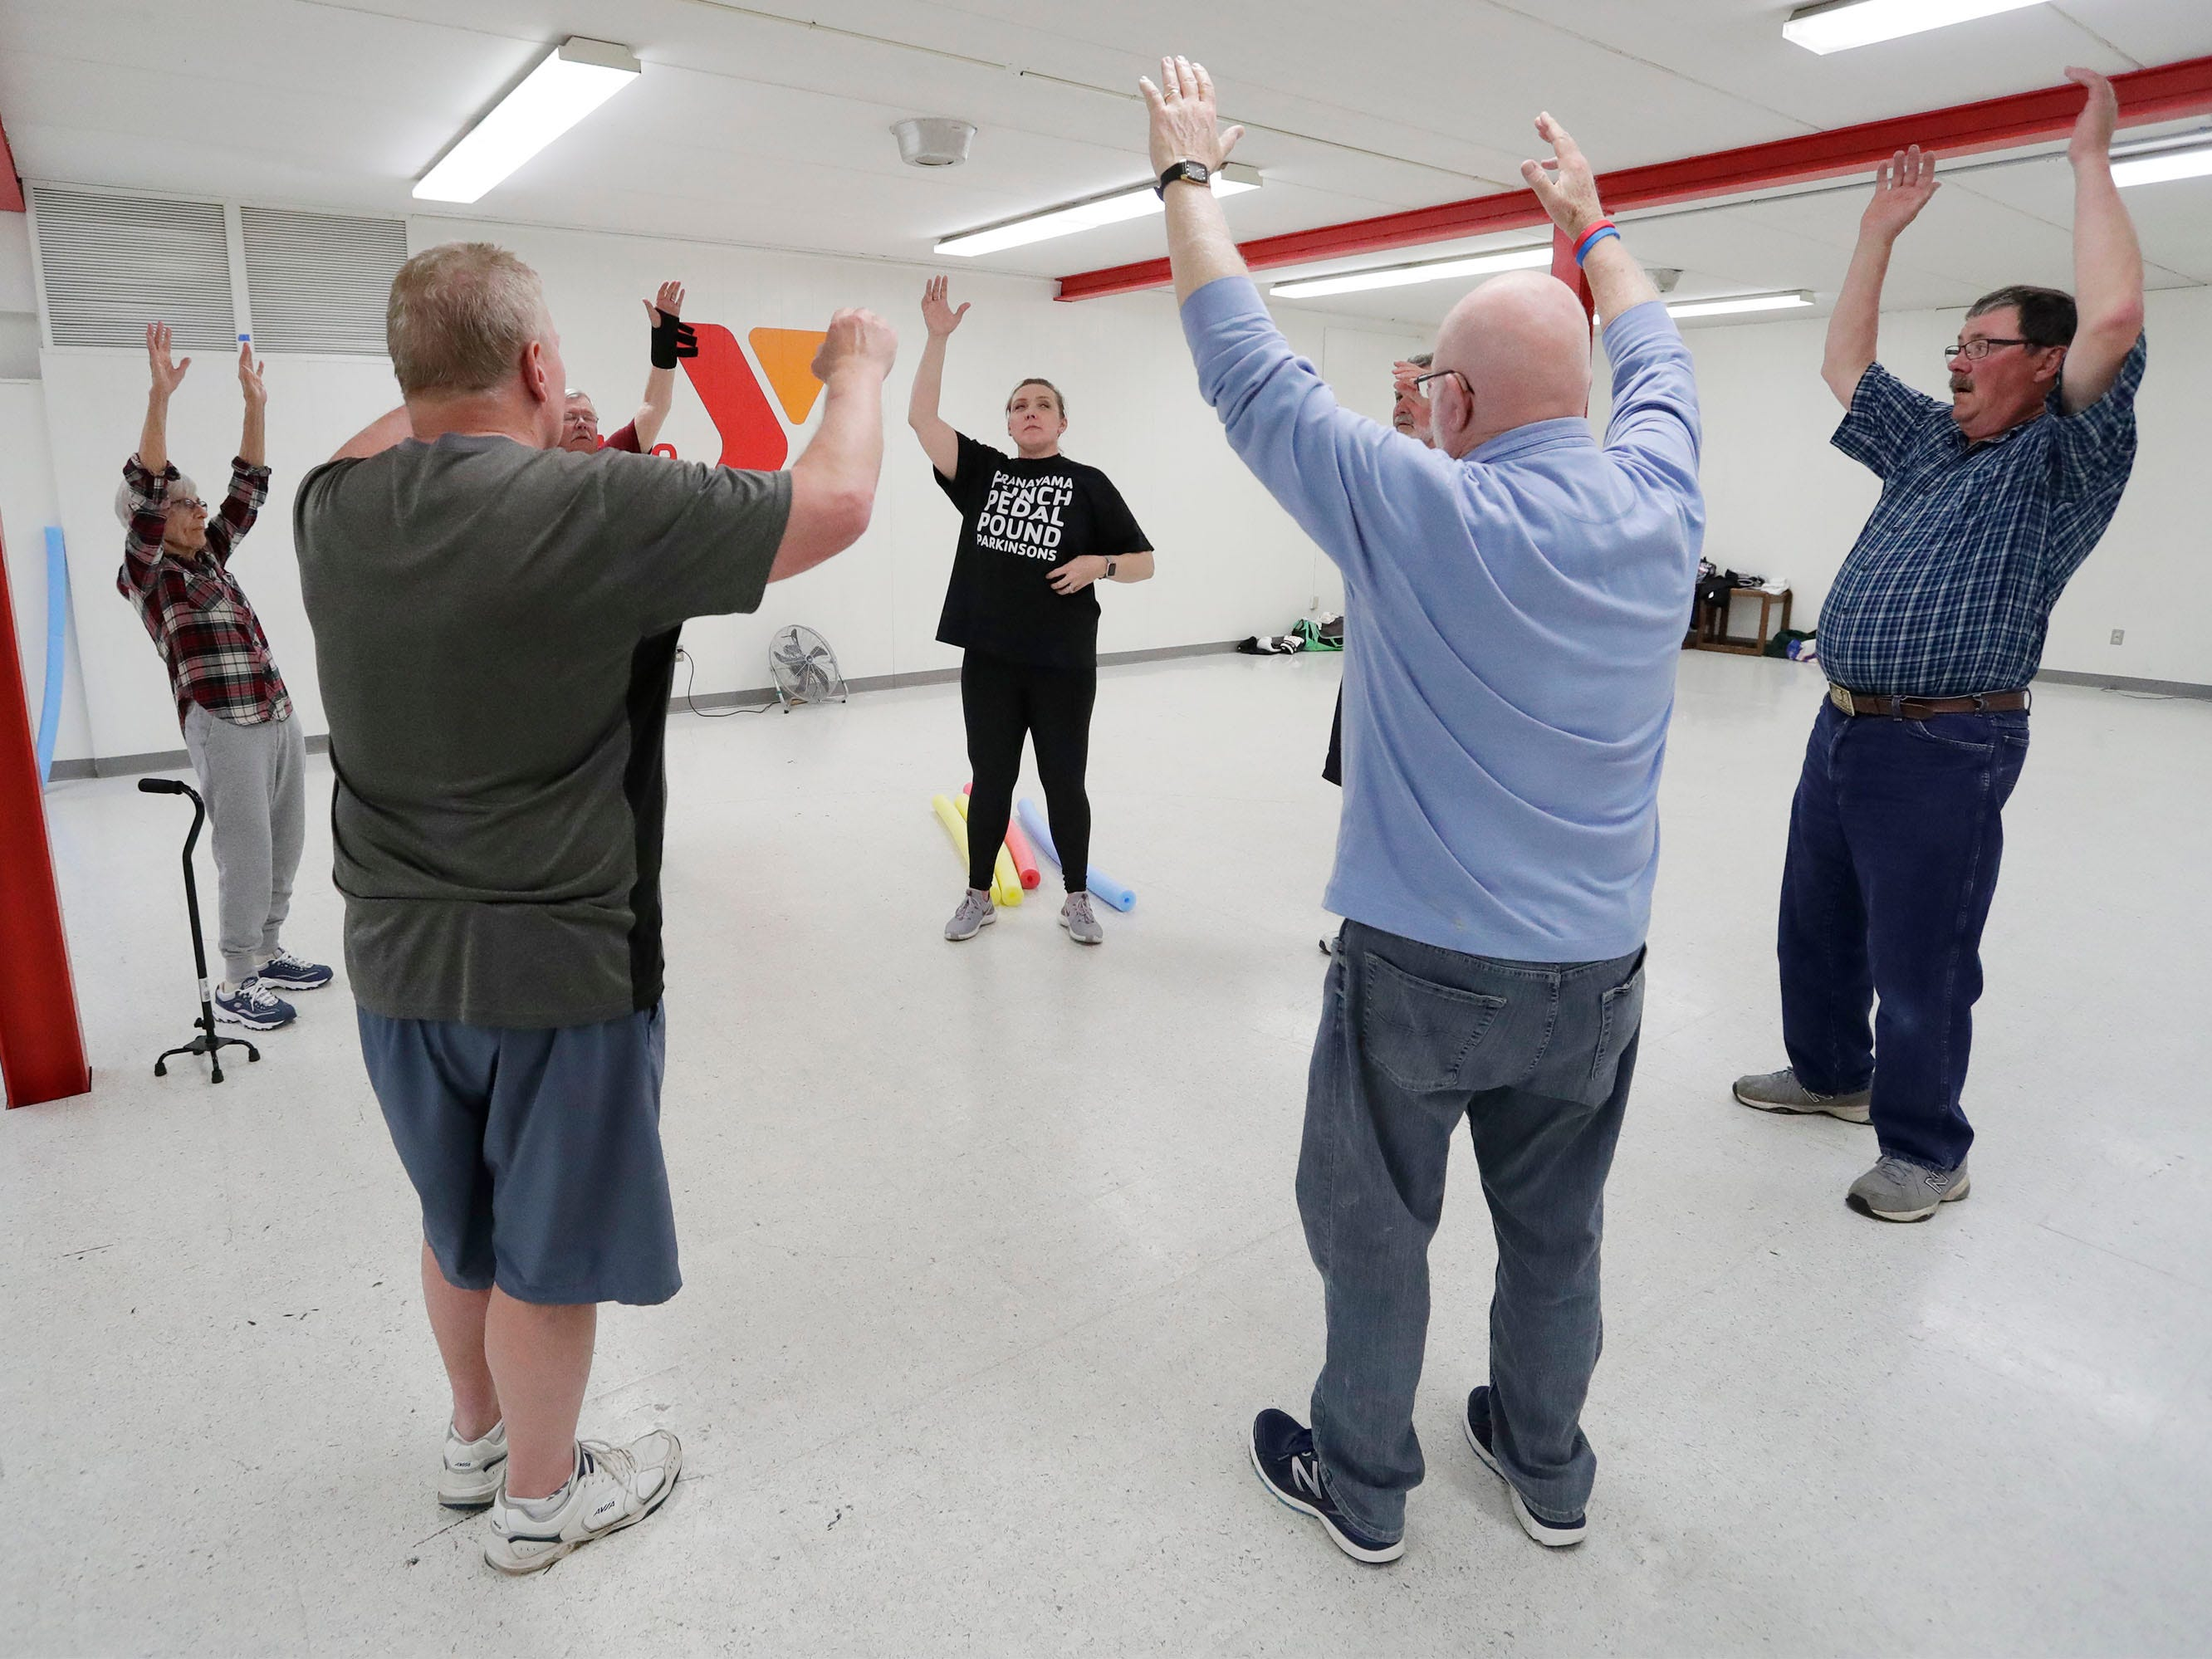 YMCA Fighting Parkinson's instructor Jana Adams works a cool down stretch with members of the class at the YMCA, Tuesday, March 26, 2019, in Sheboygan, Wis.